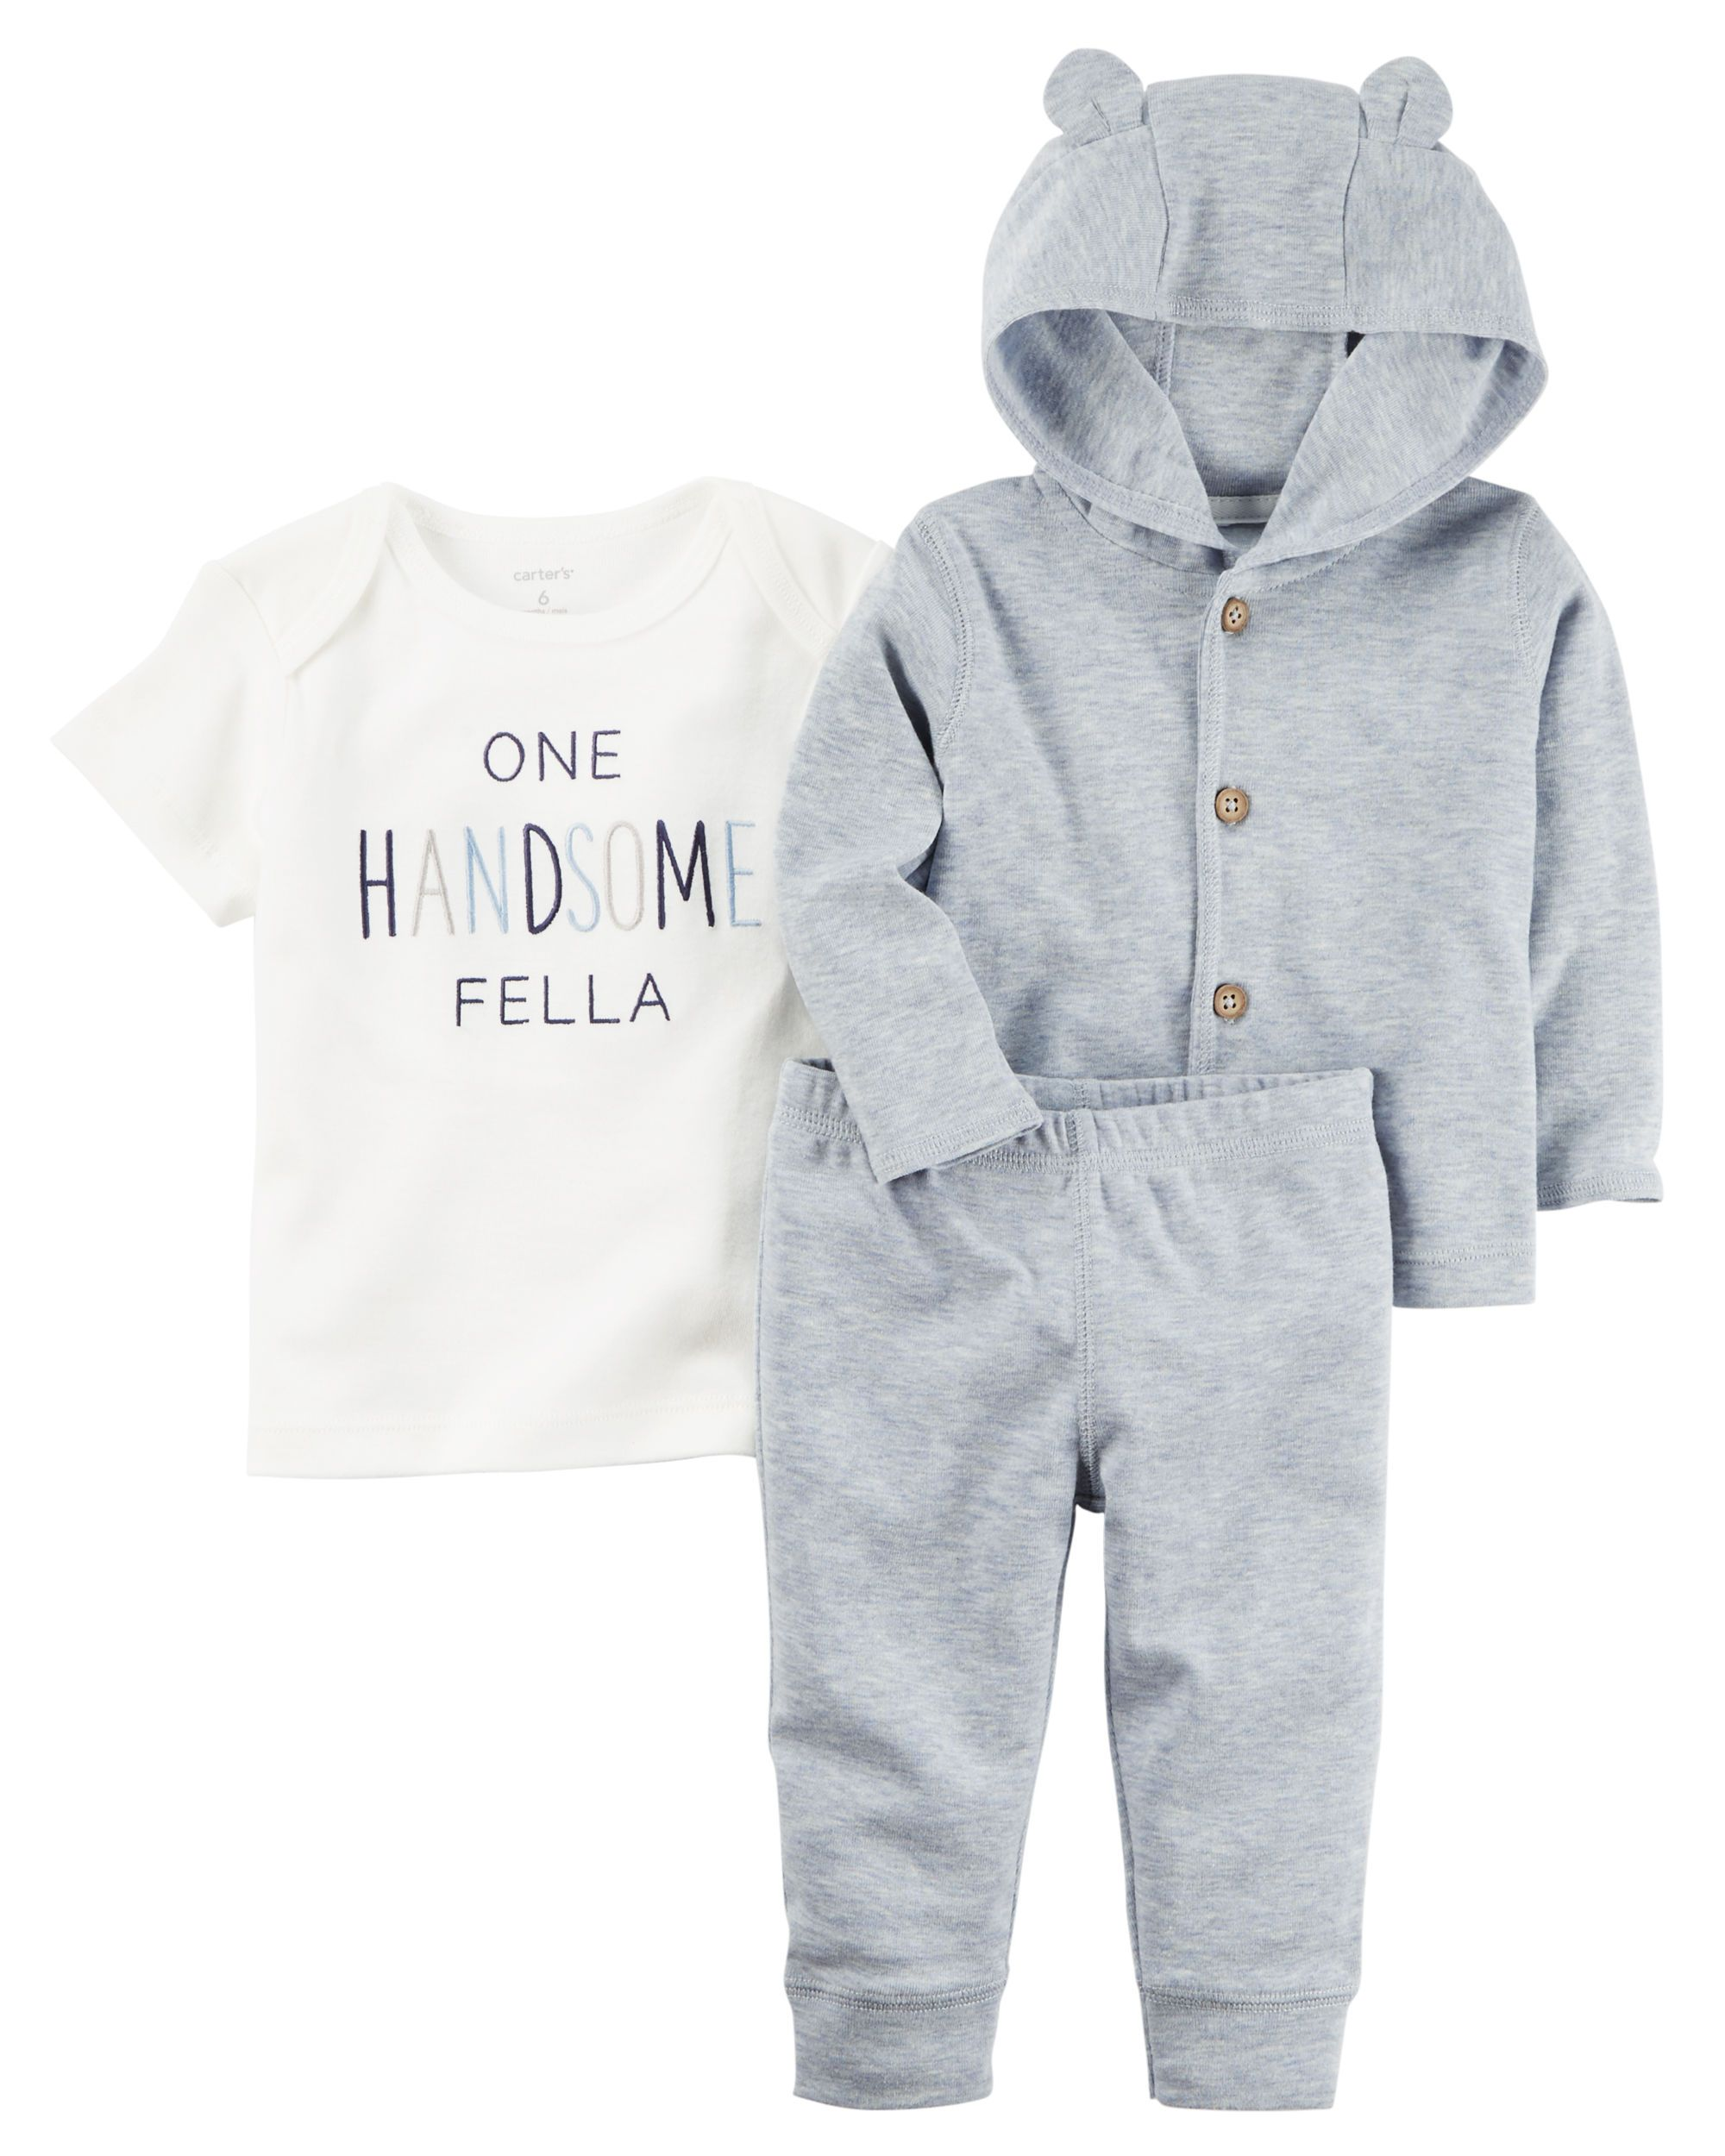 577eb62f5 Baby Boy 3-Piece Heathered Little Jacket Set from Carters.com. Shop  clothing & accessories from a trusted name in kids, toddlers, and baby  clothes.